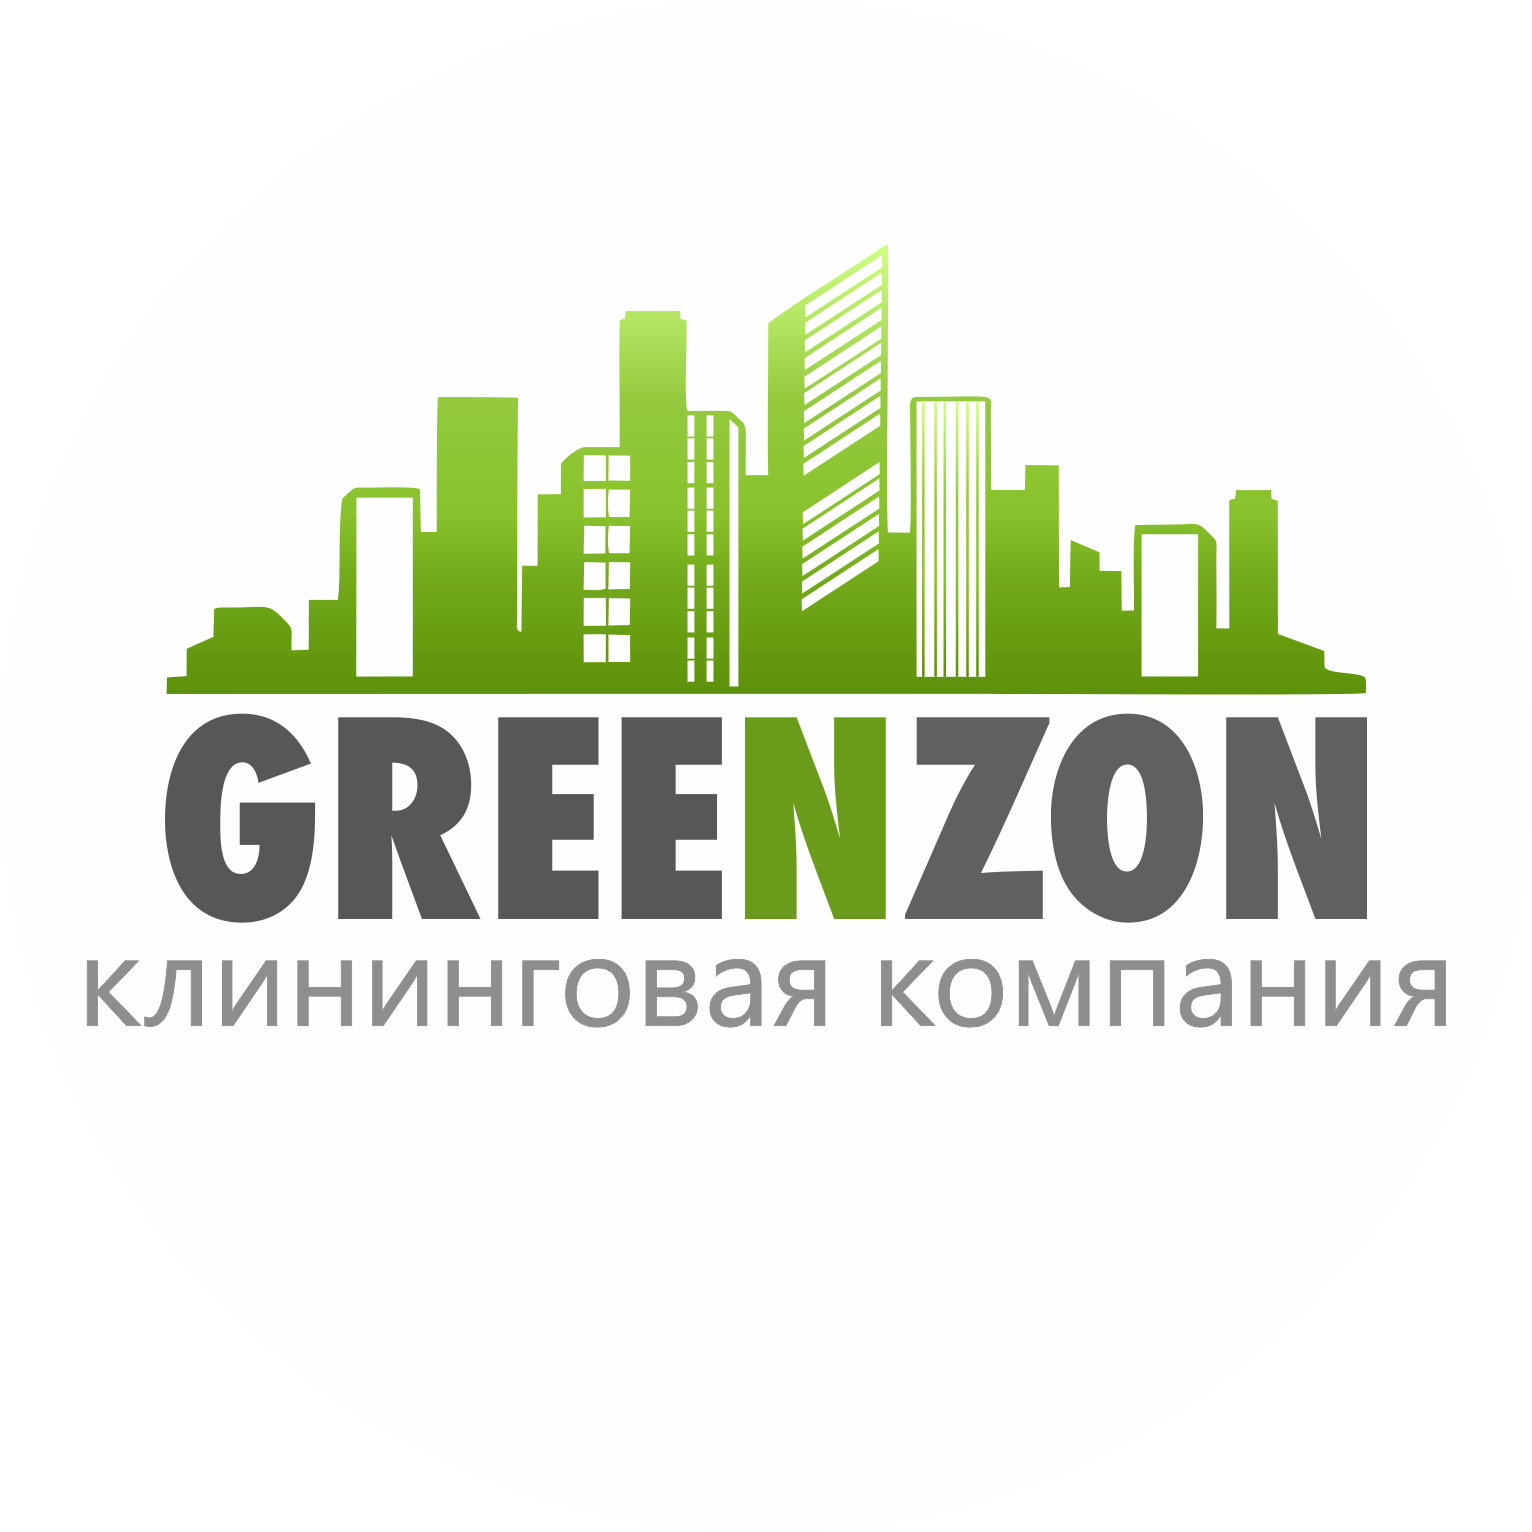 GreenZon